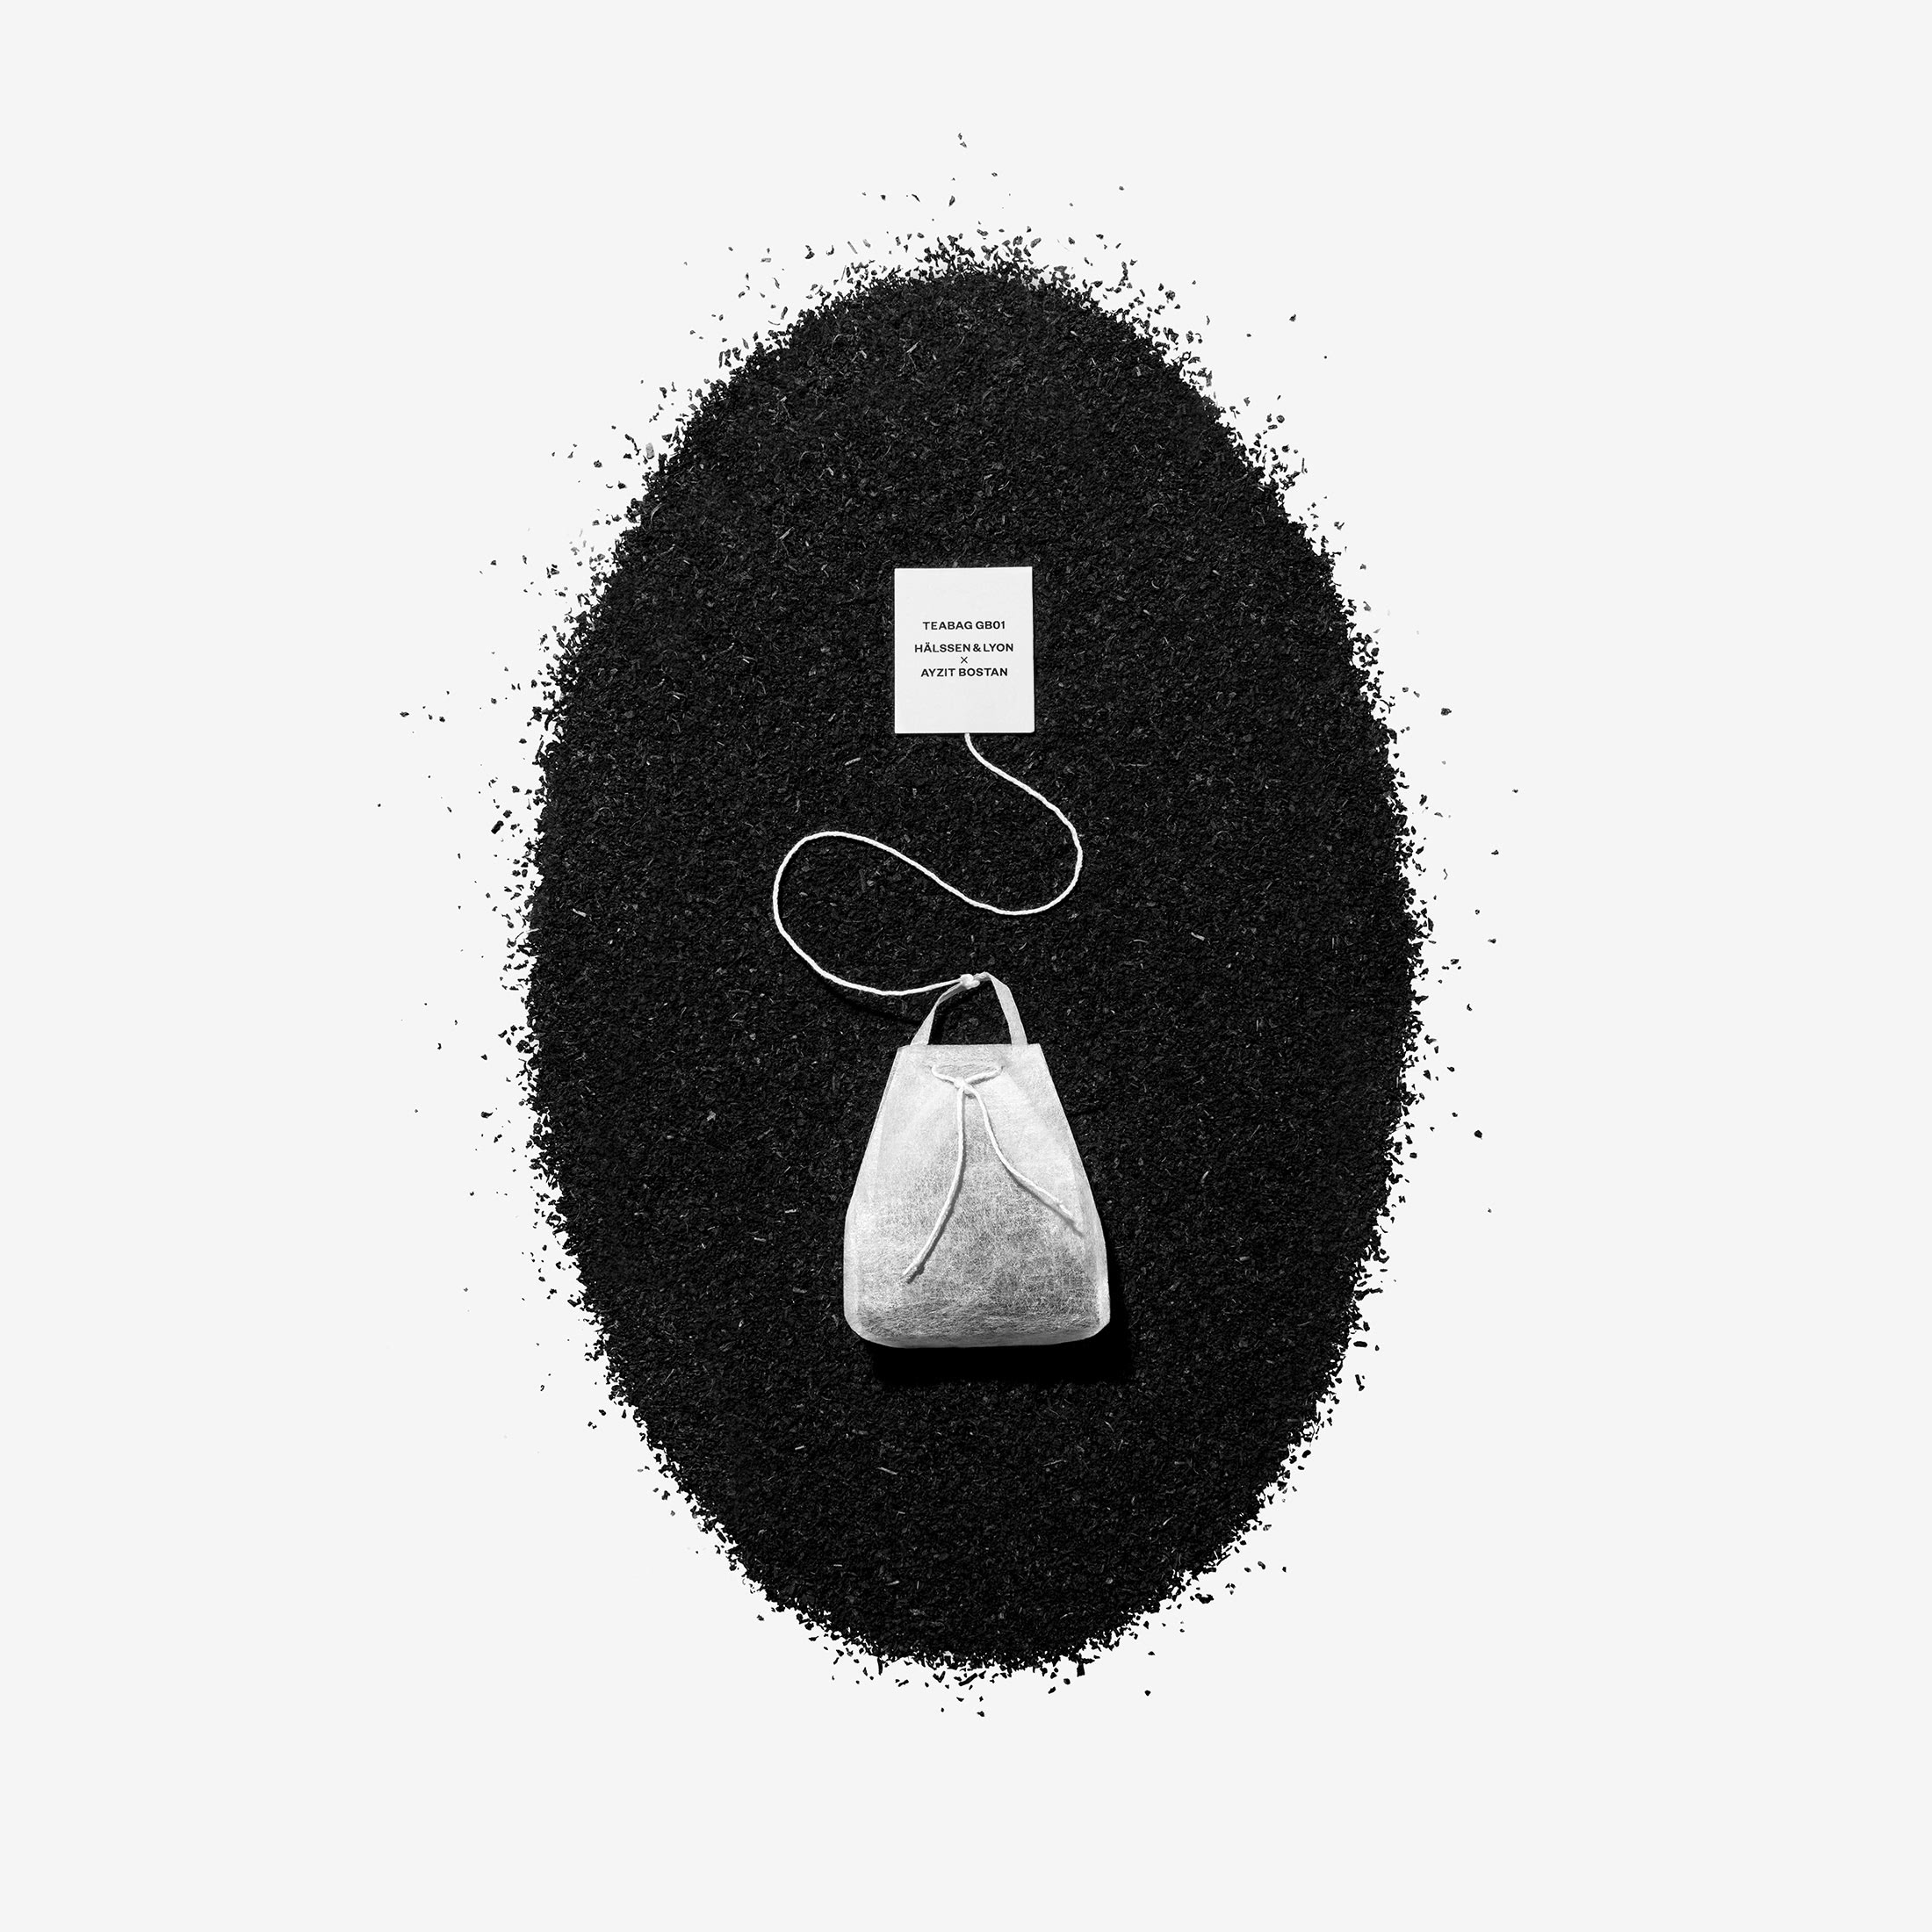 Teabag_Collection_06-Mitja_Schneehage